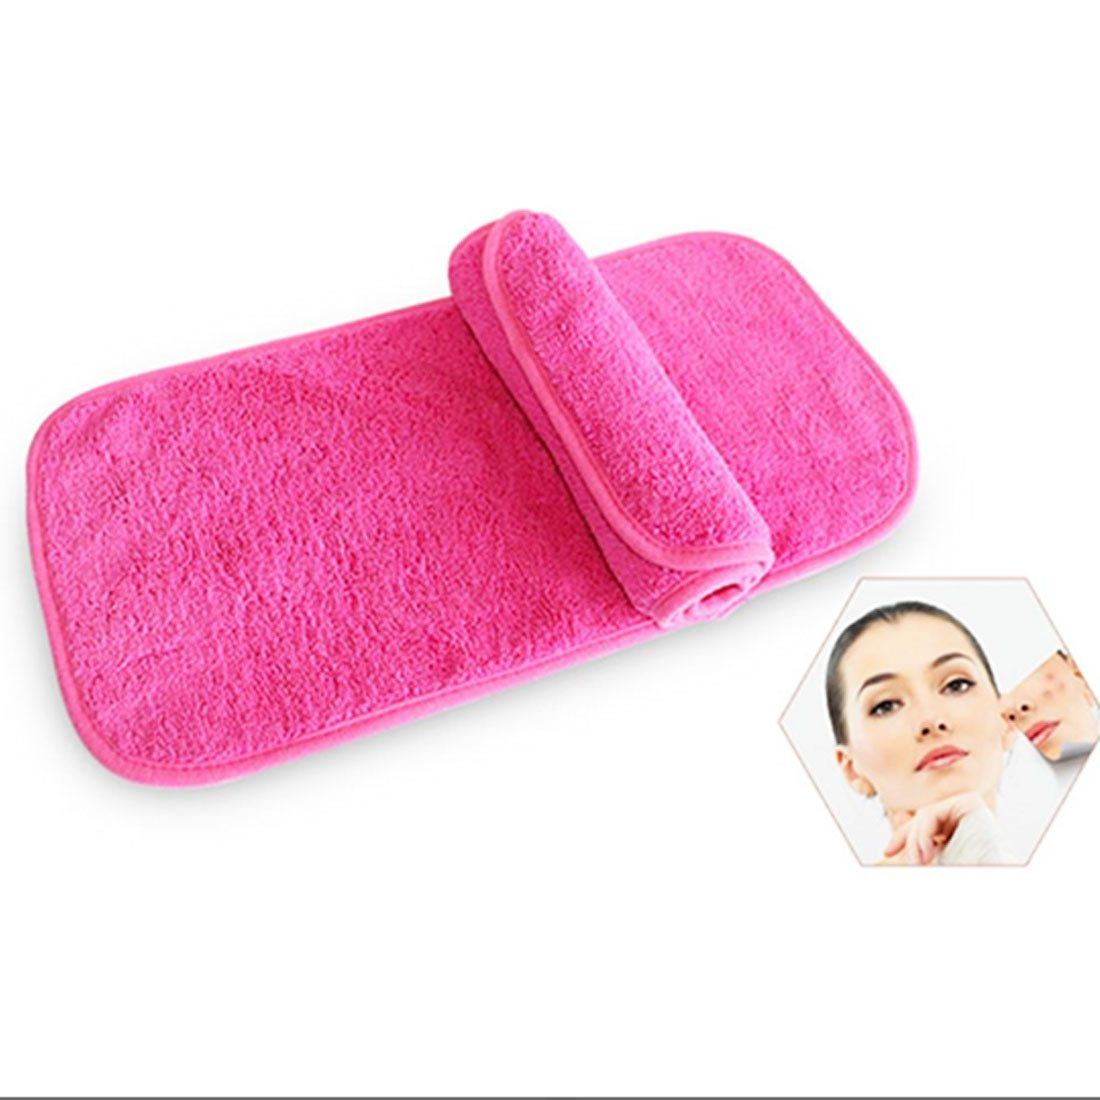 Reusable Magic Makeup Remover Towel Urban Pronto